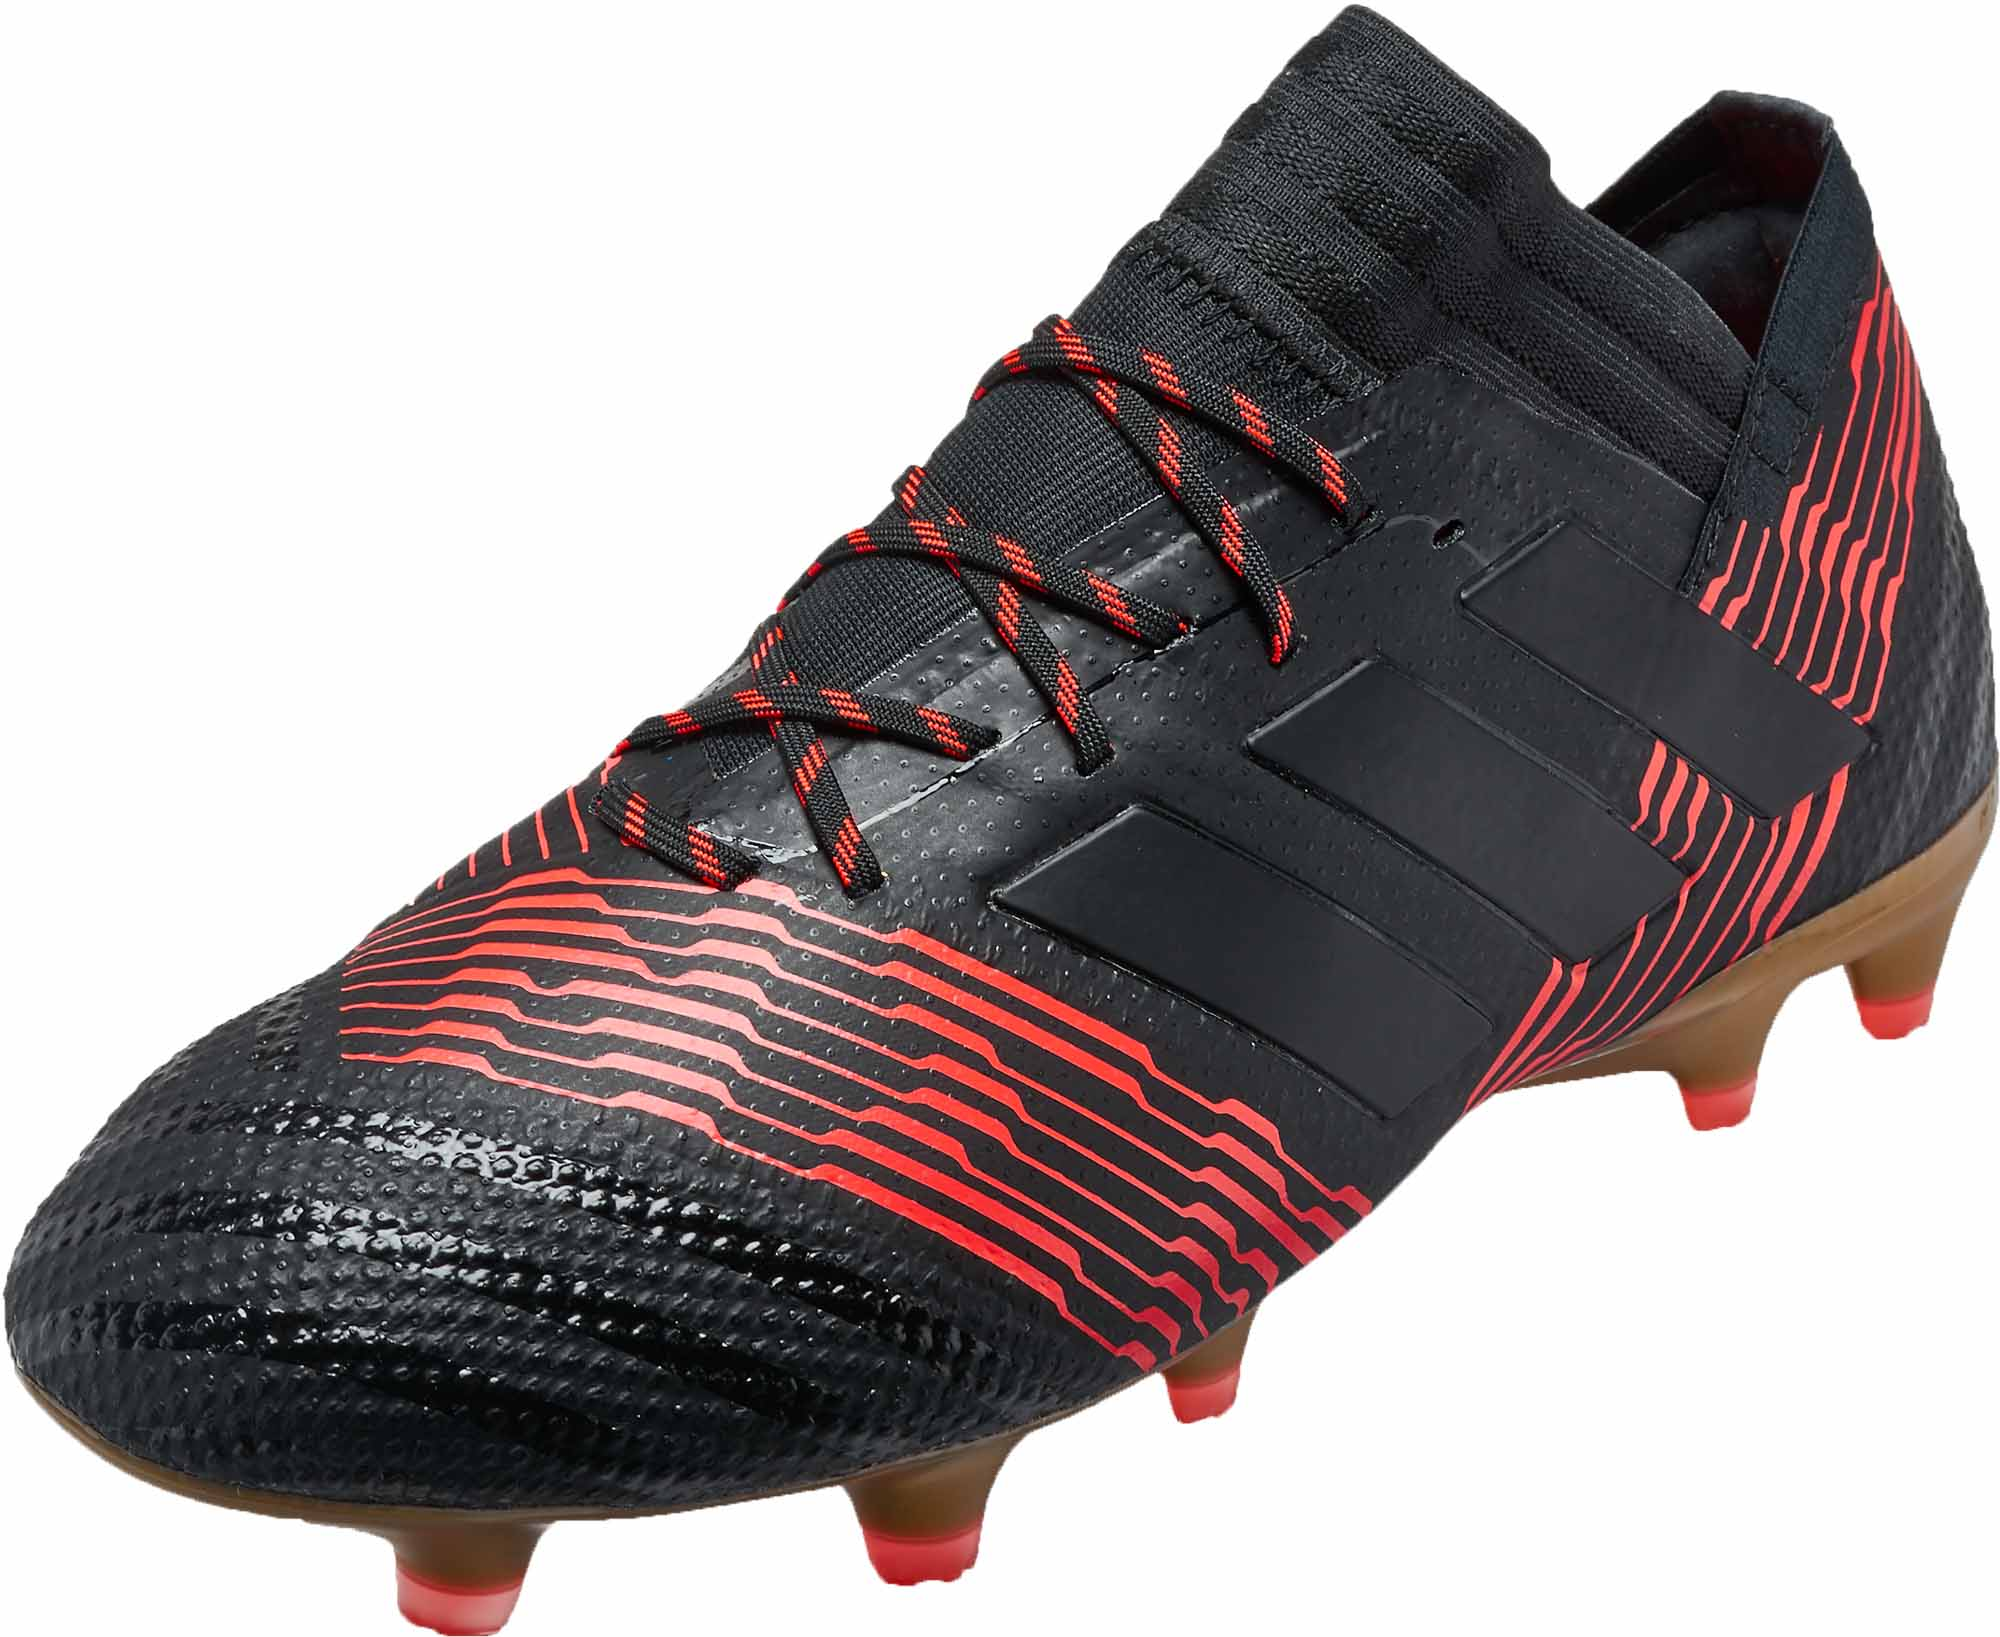 Adidas Soccer Shoes Clearance